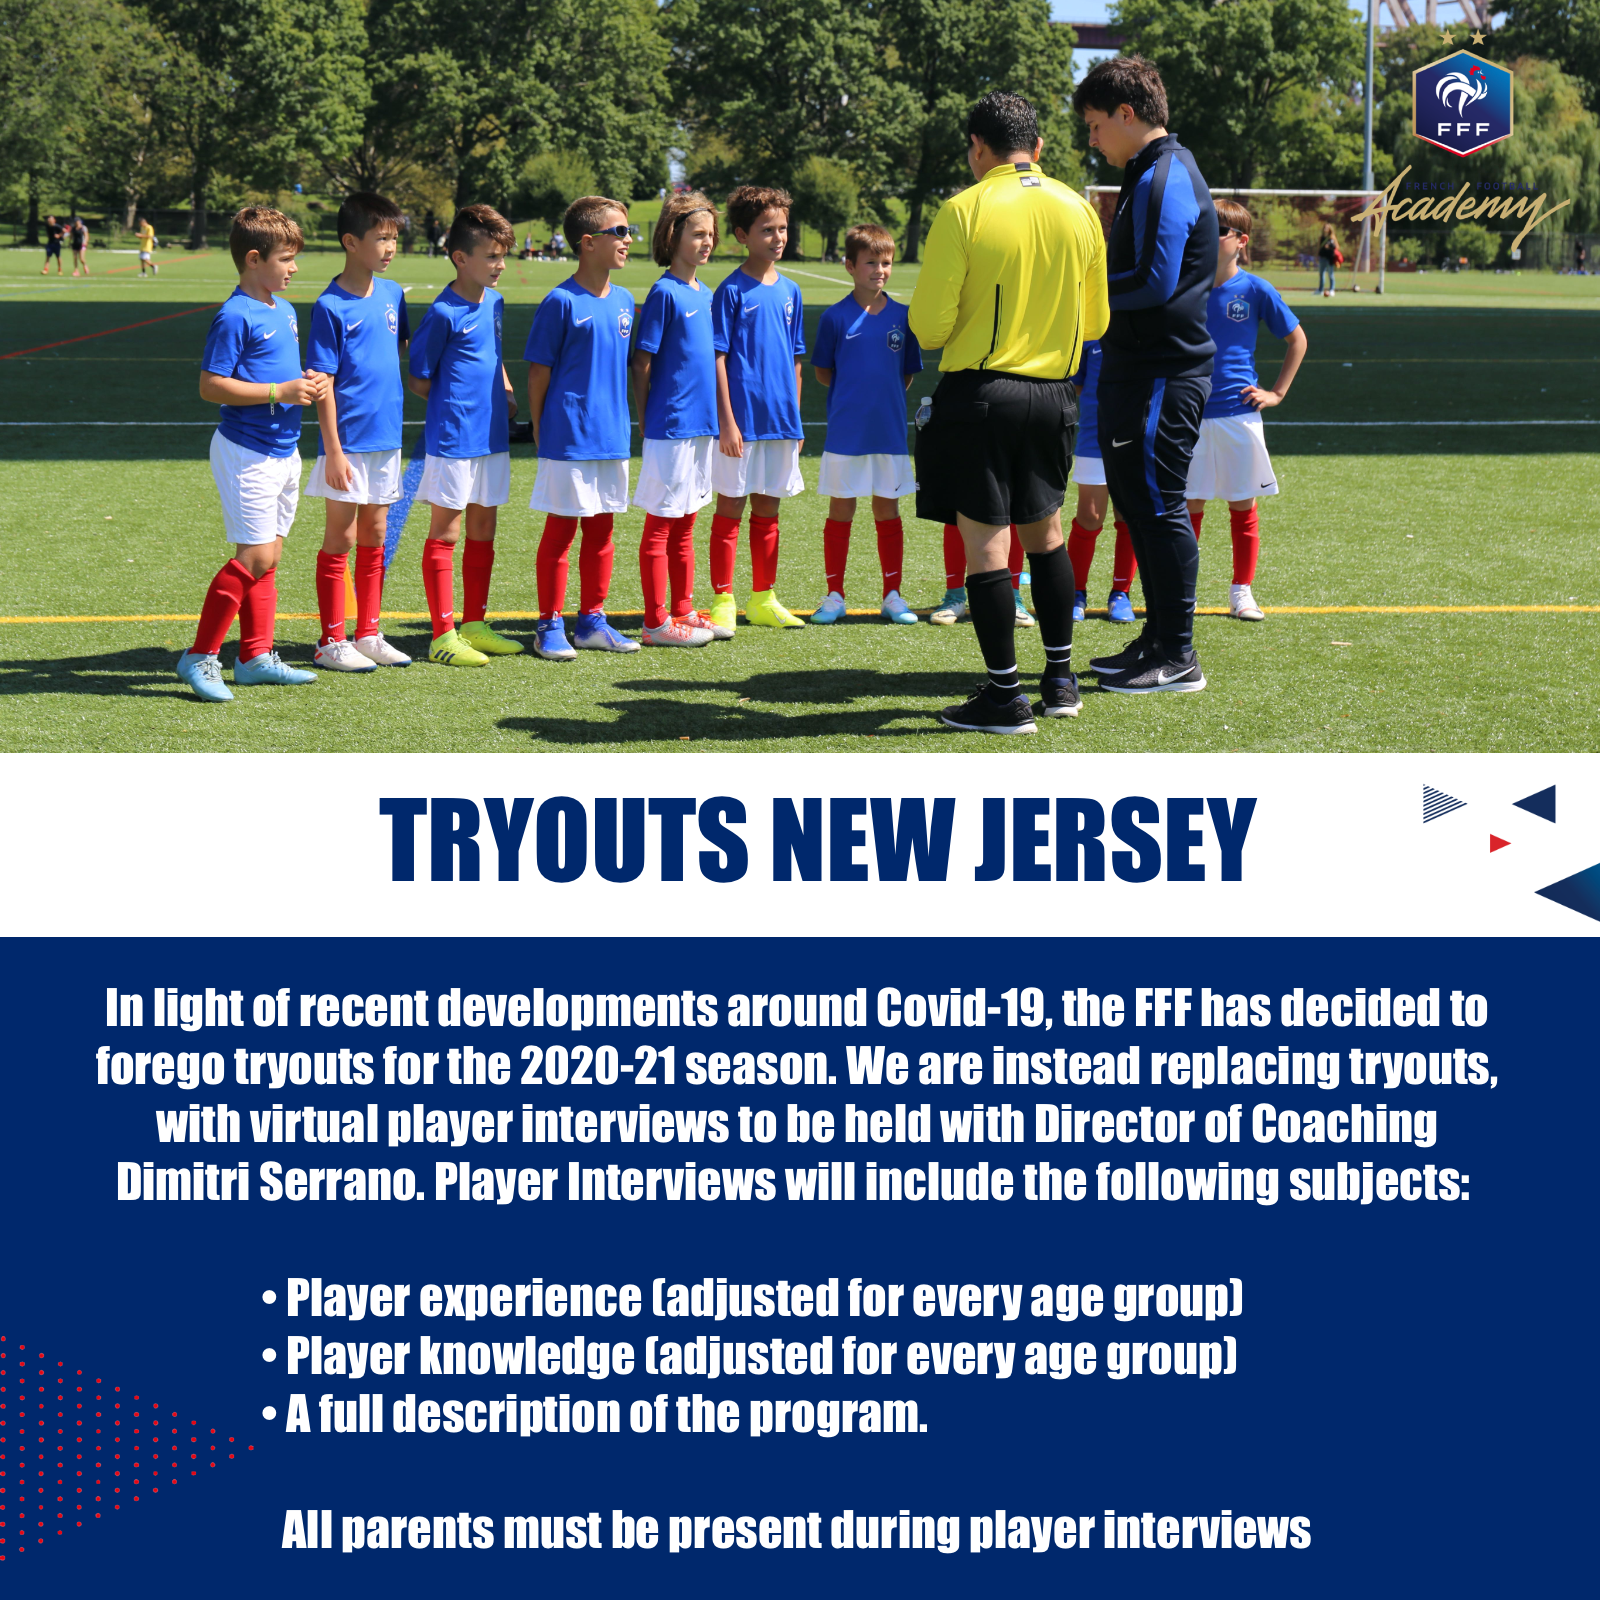 FFA - Tryouts New Jersey